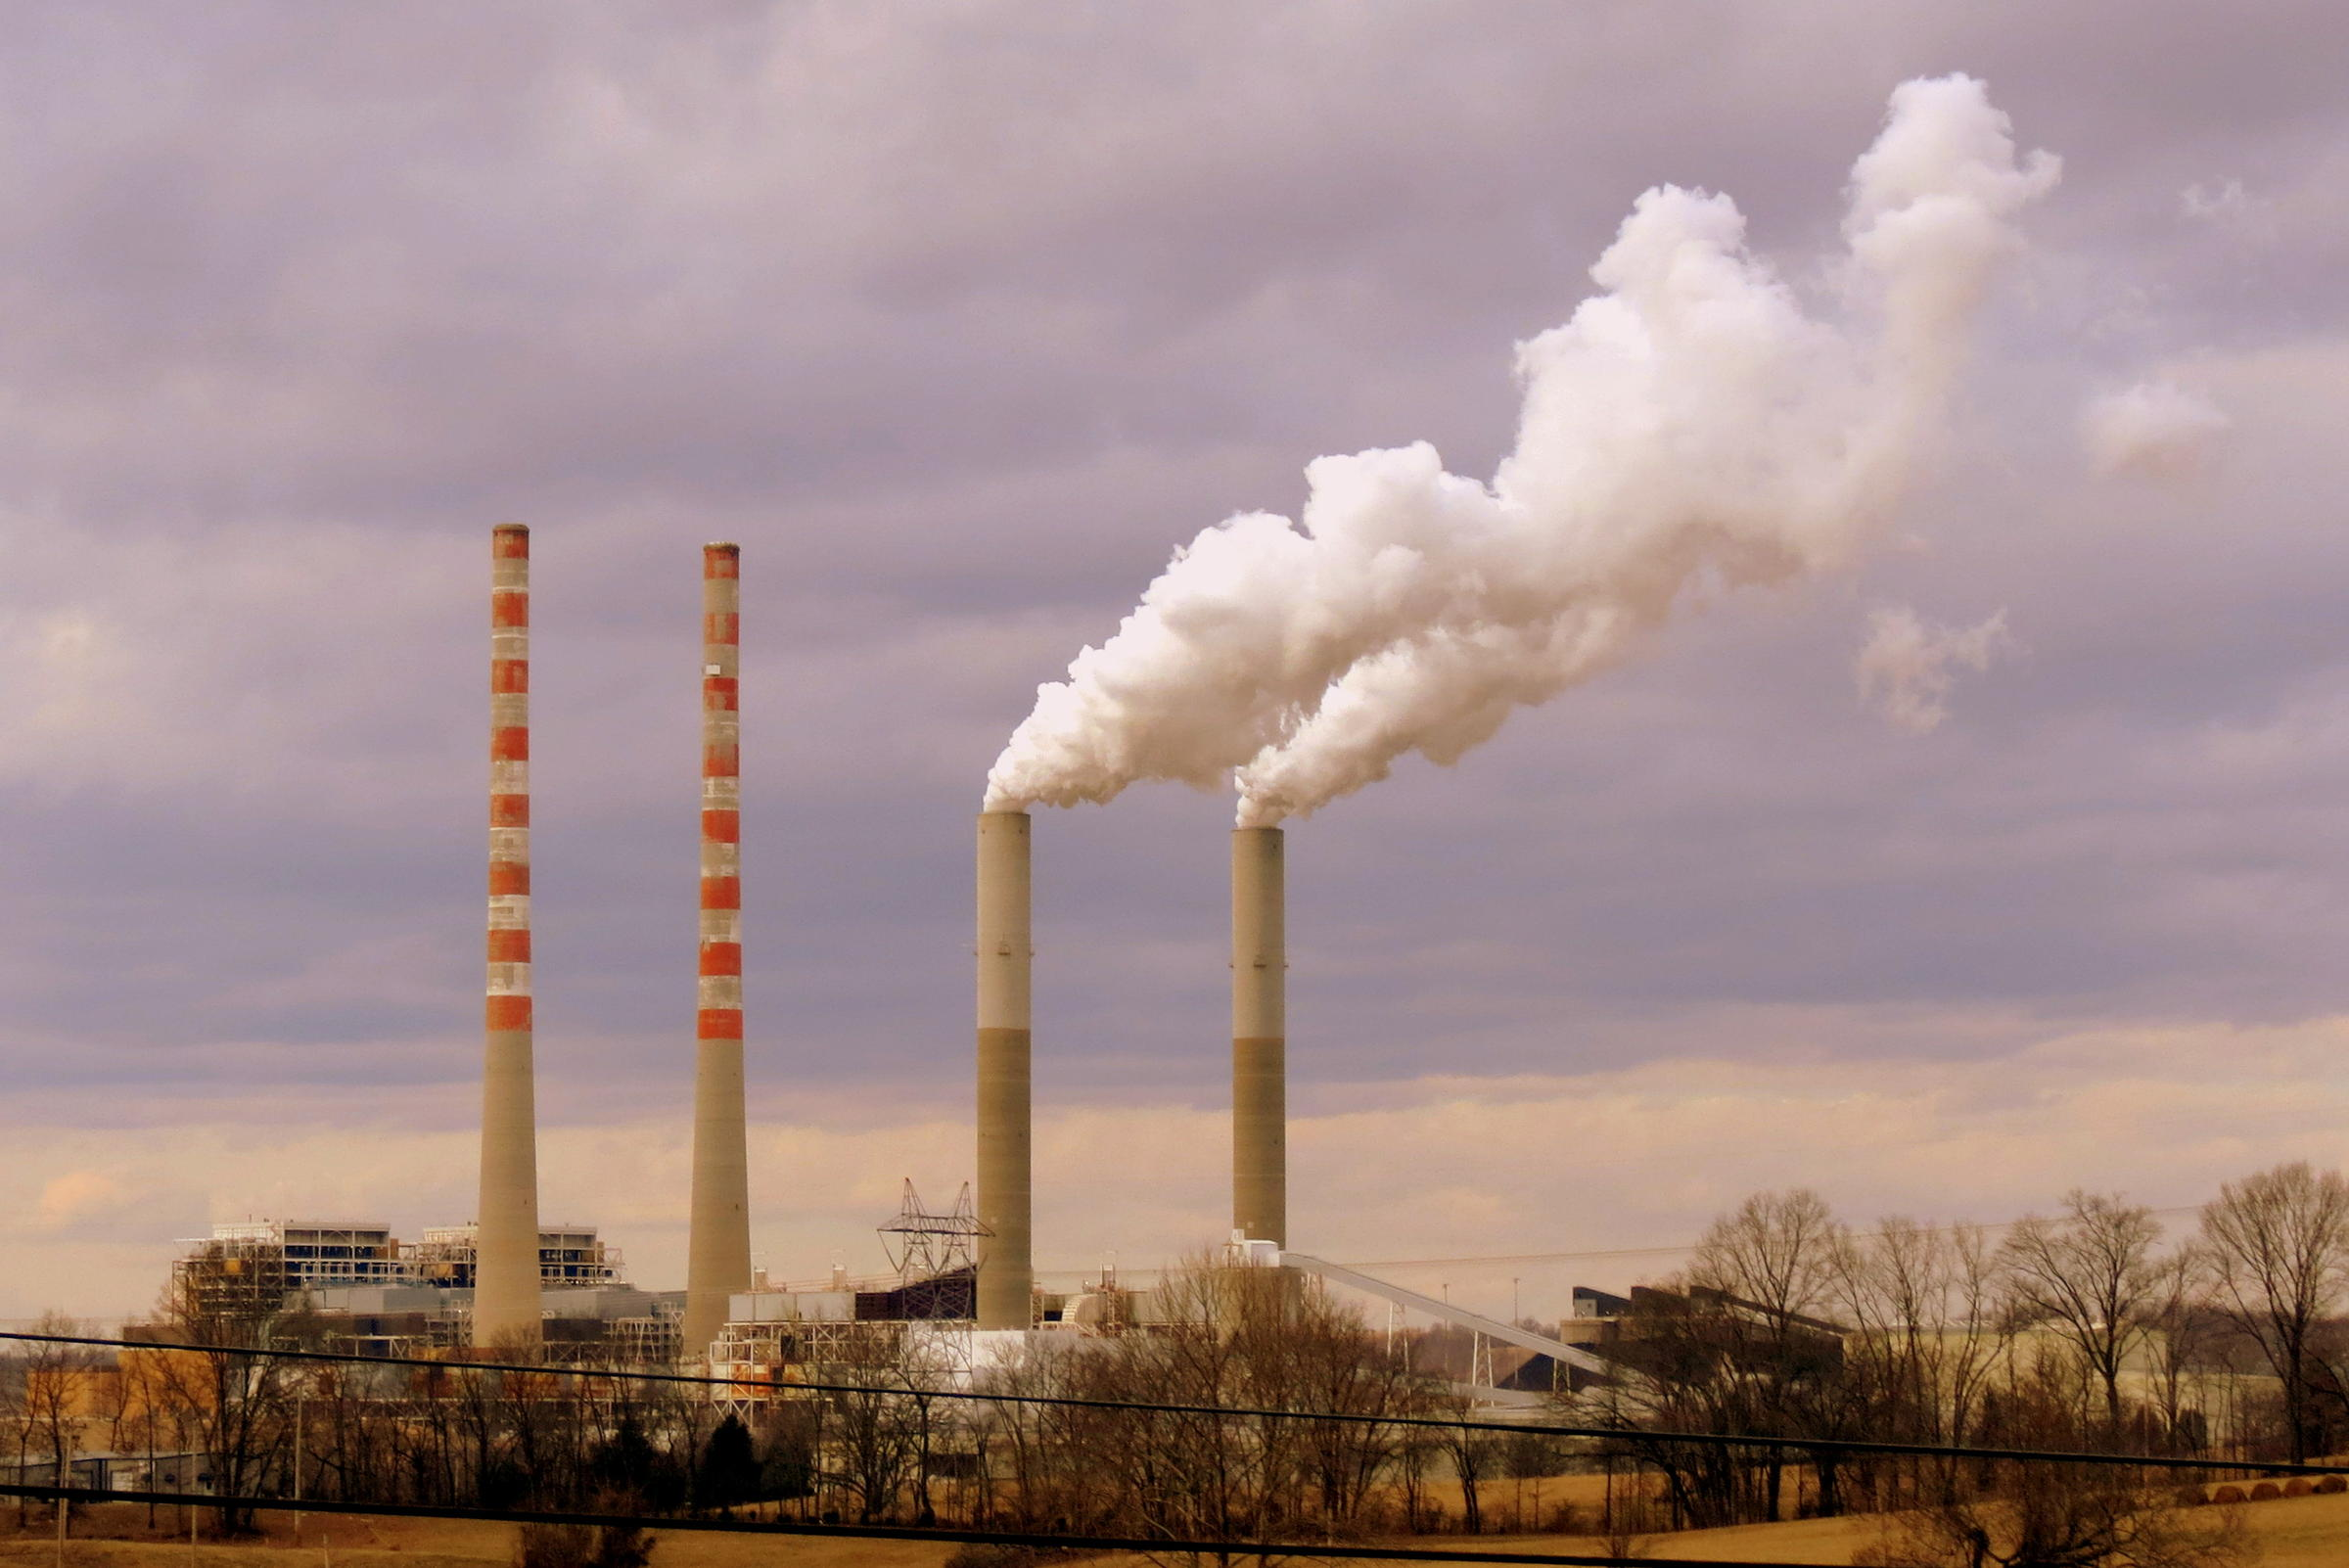 TVA Fuel Prices Lowest in Four Years, Lowering Wholesale Power Cost